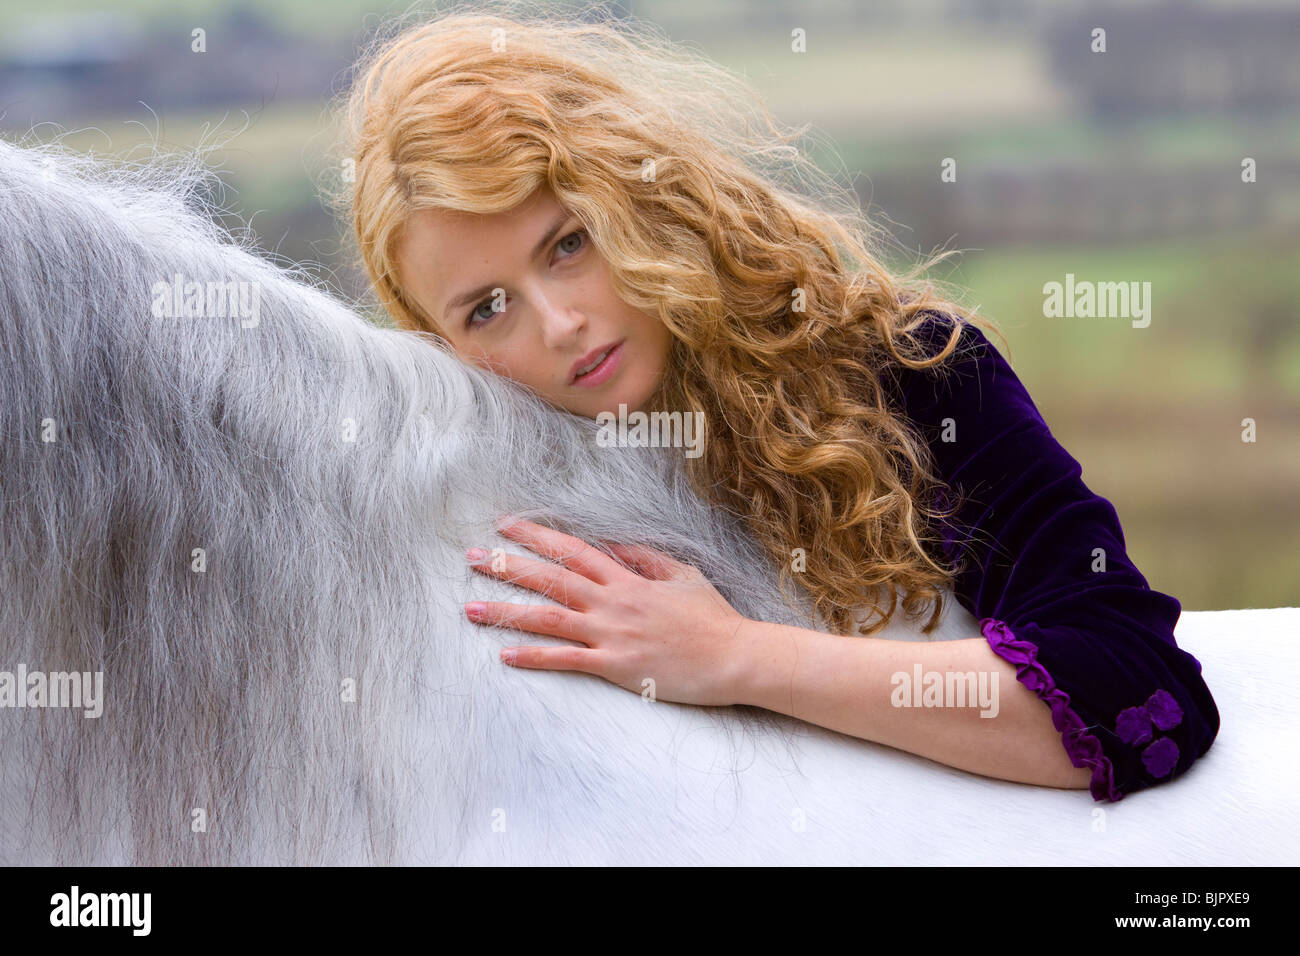 Girl with horse 1 - Stock Image